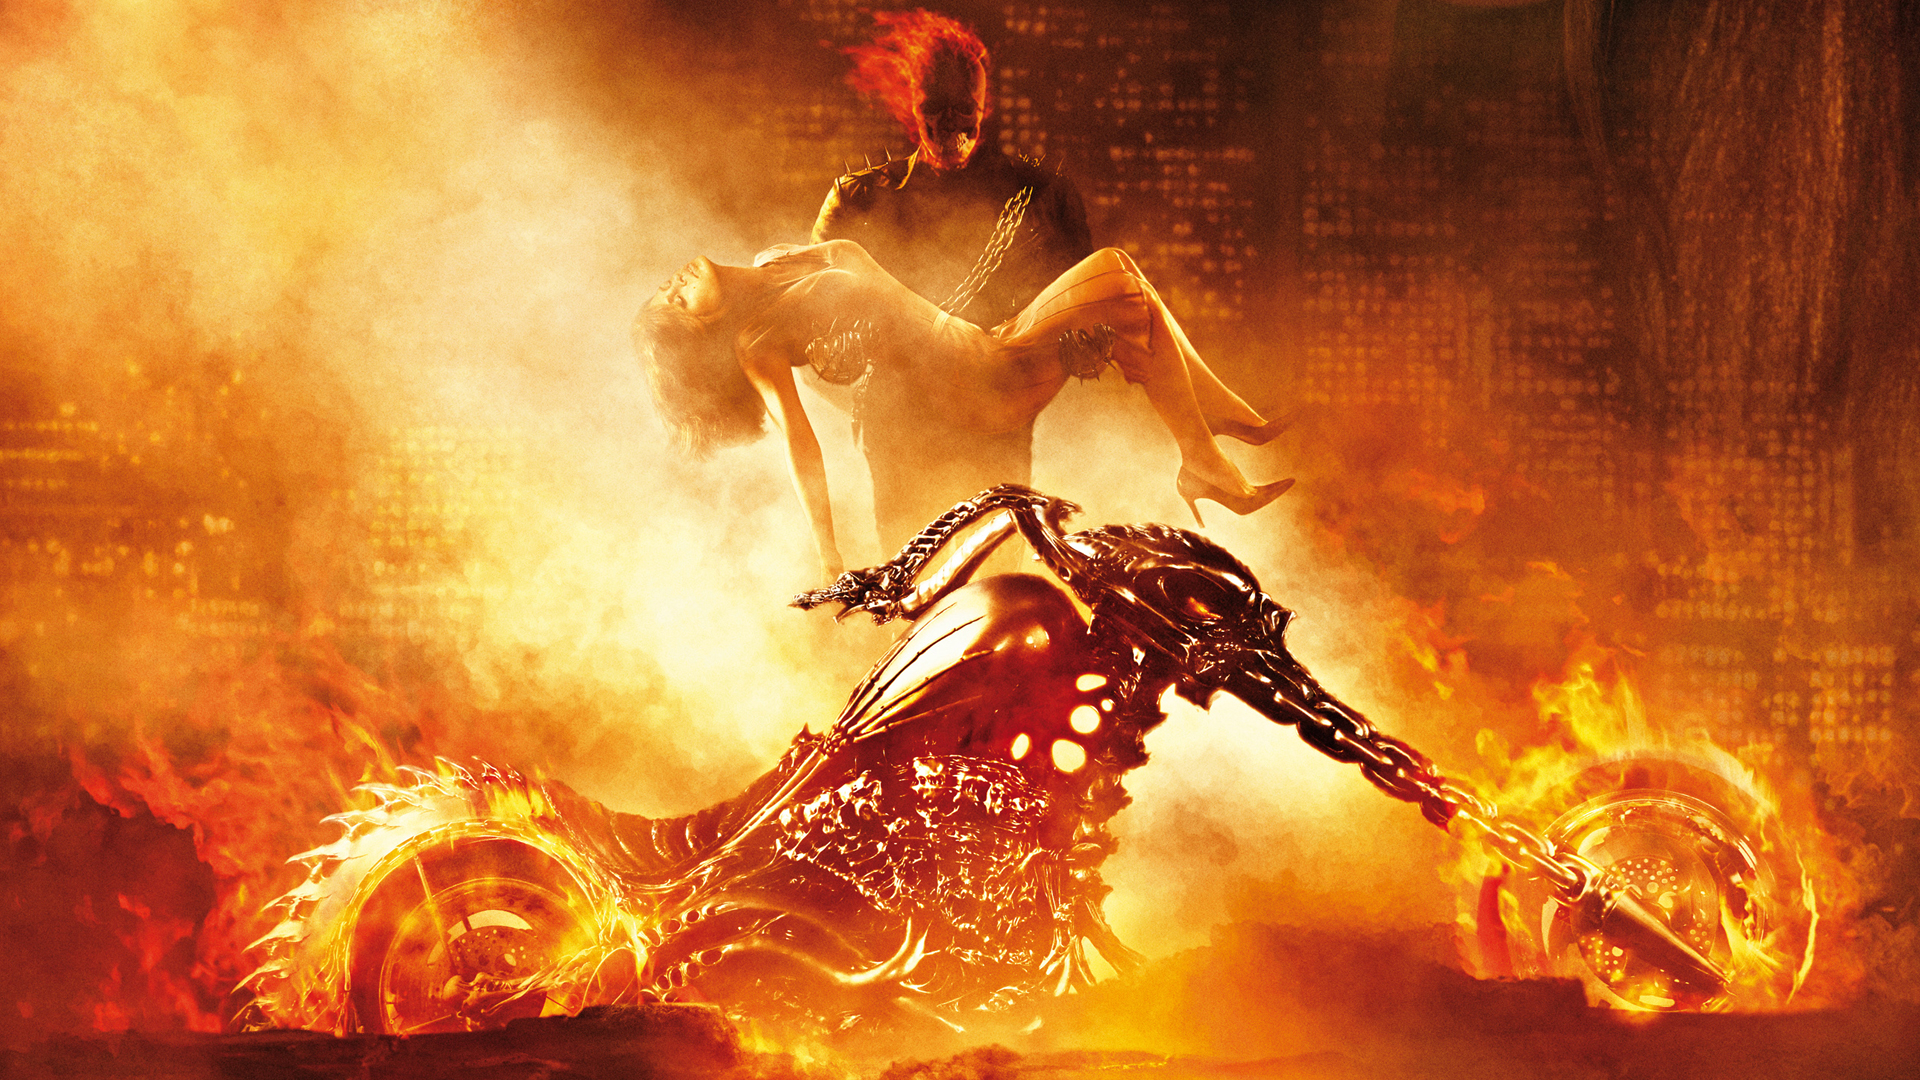 HQ Ghost Rider Wallpaper   HQ Wallpapers 1920x1080